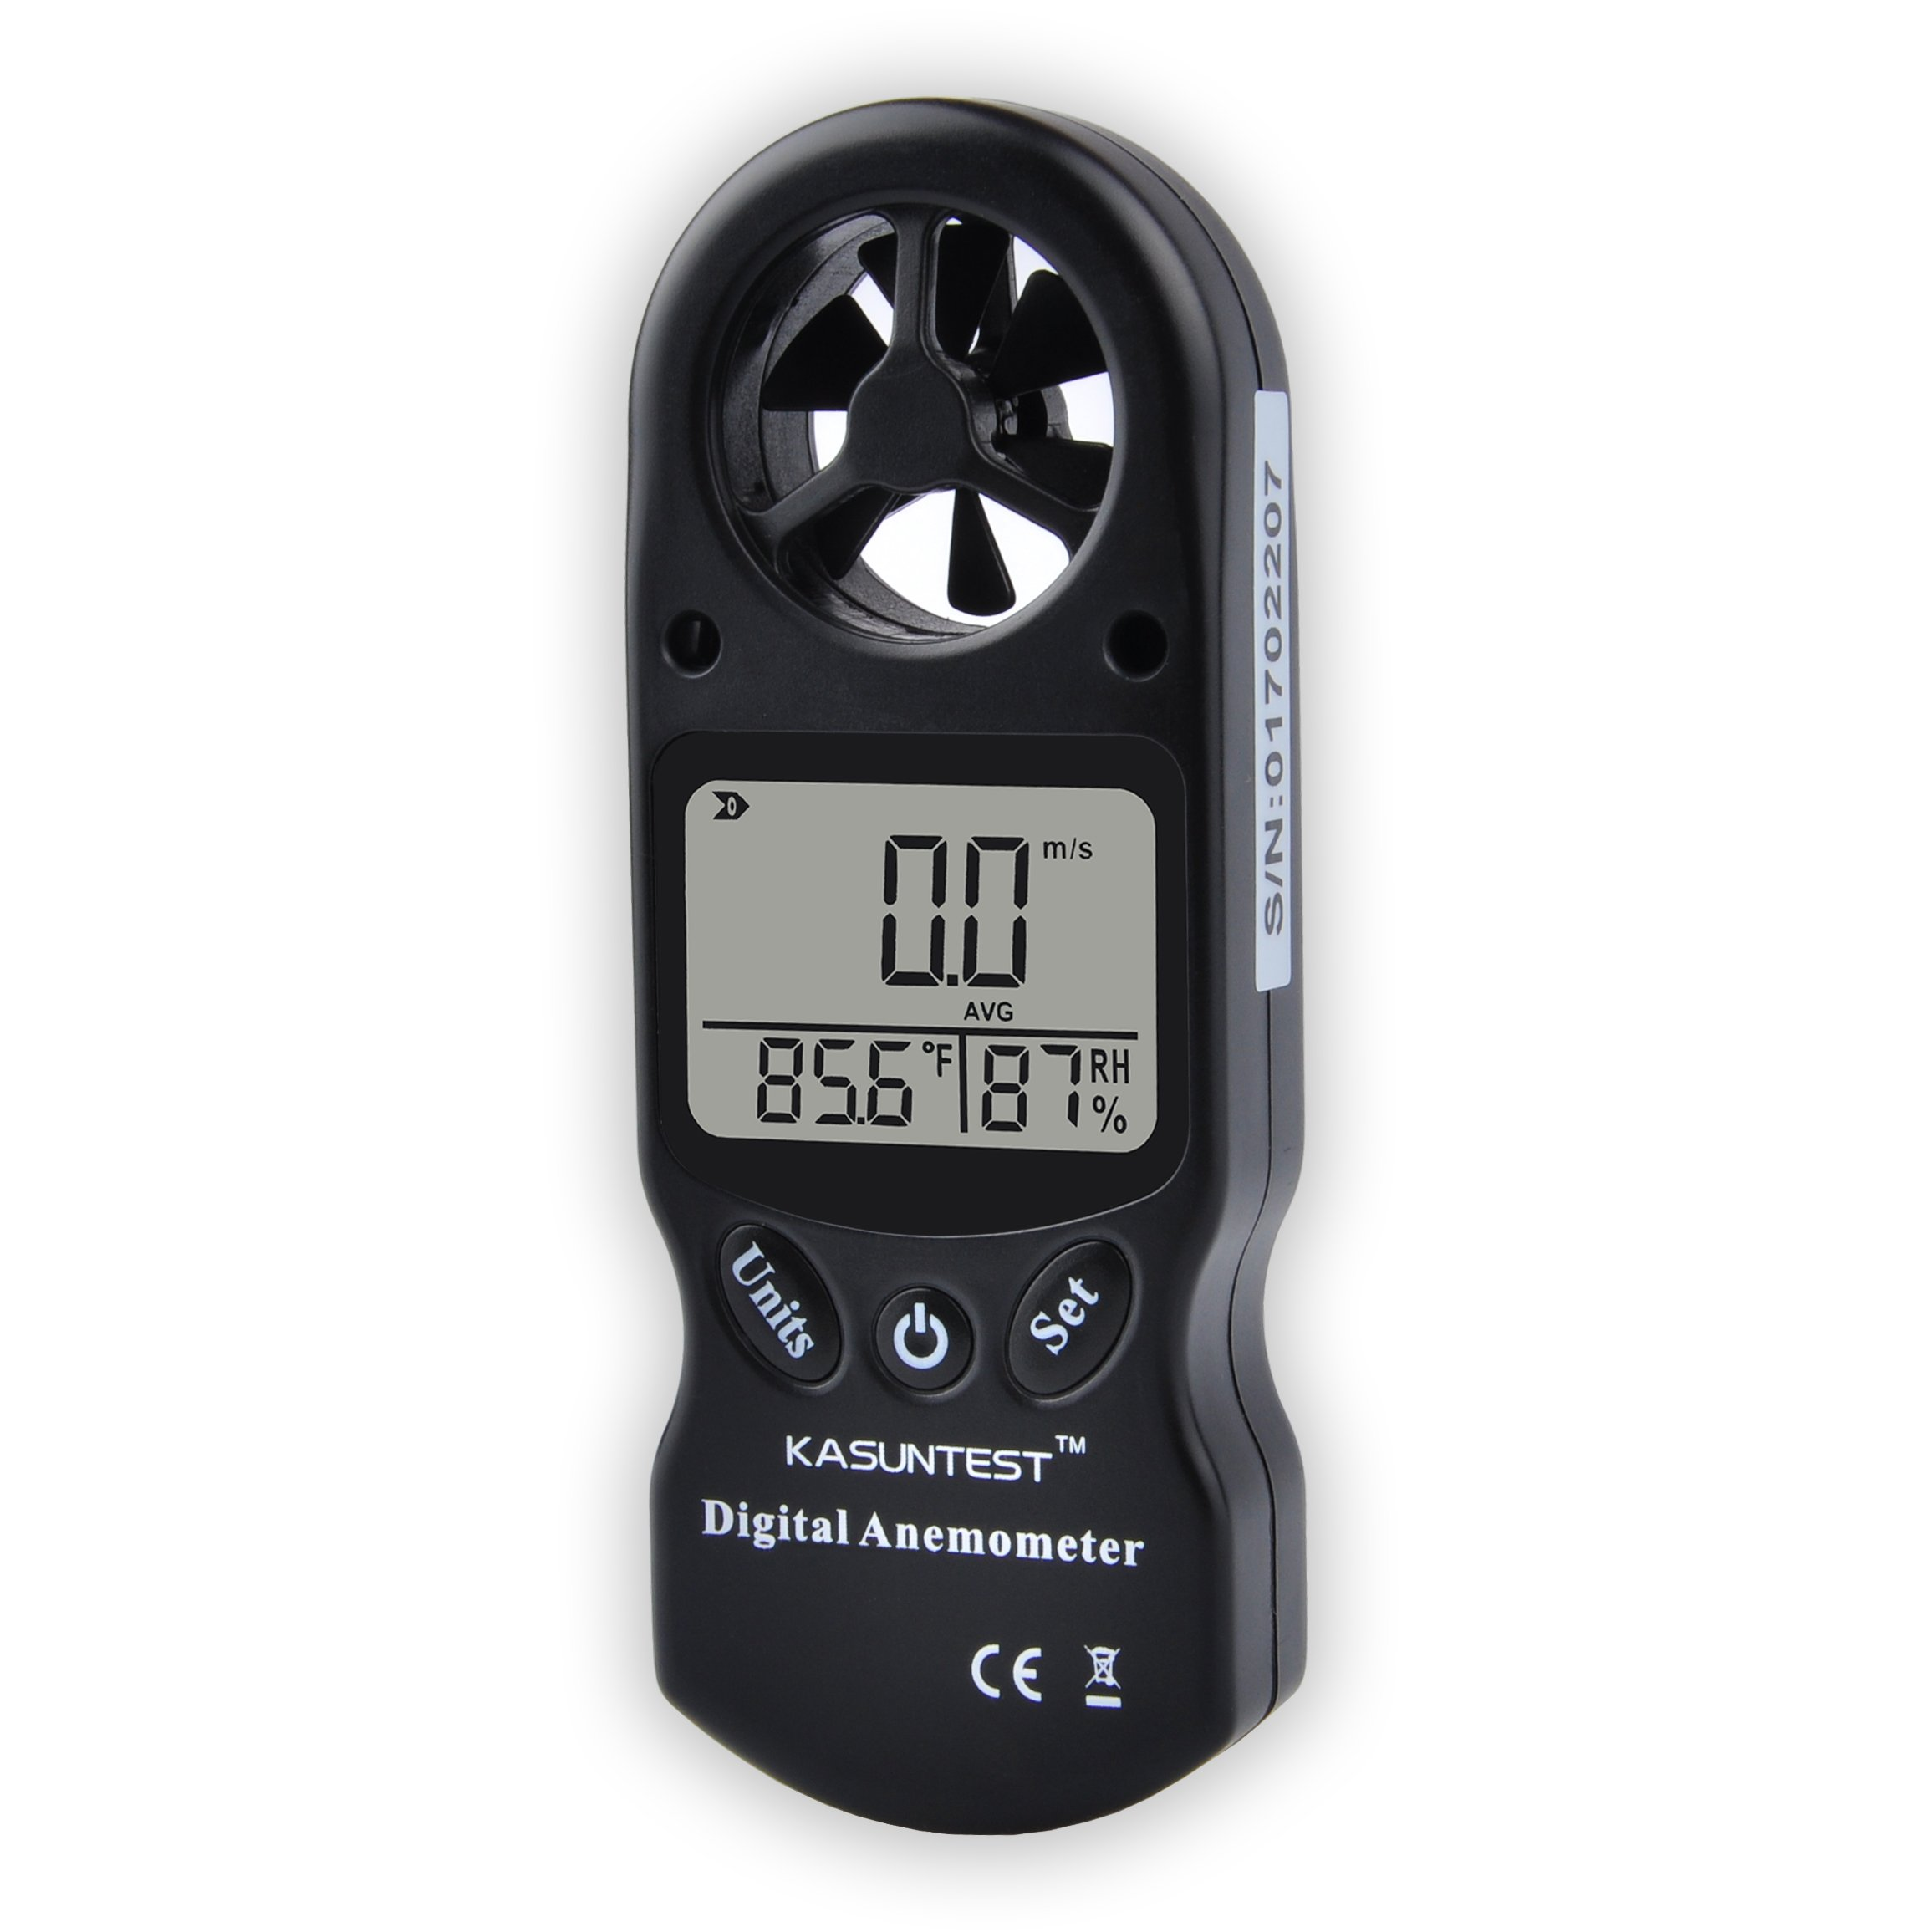 KASUNTEST 3 In 1 Digital Anemometer LCD Wind Speed Meter Gauge Air Flow Velocity Tester with Temperature and Humidity Measurement KT300